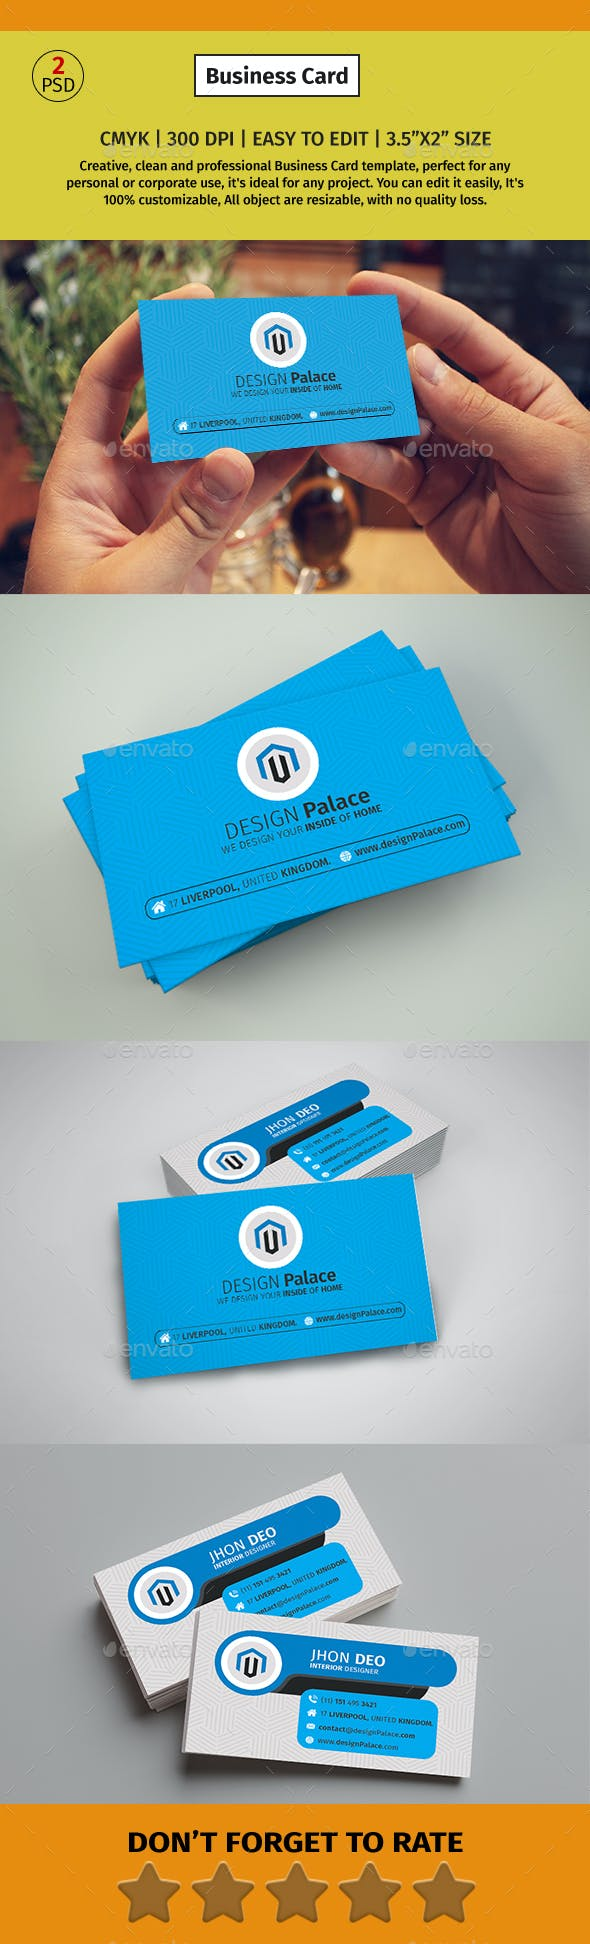 Business Card #09